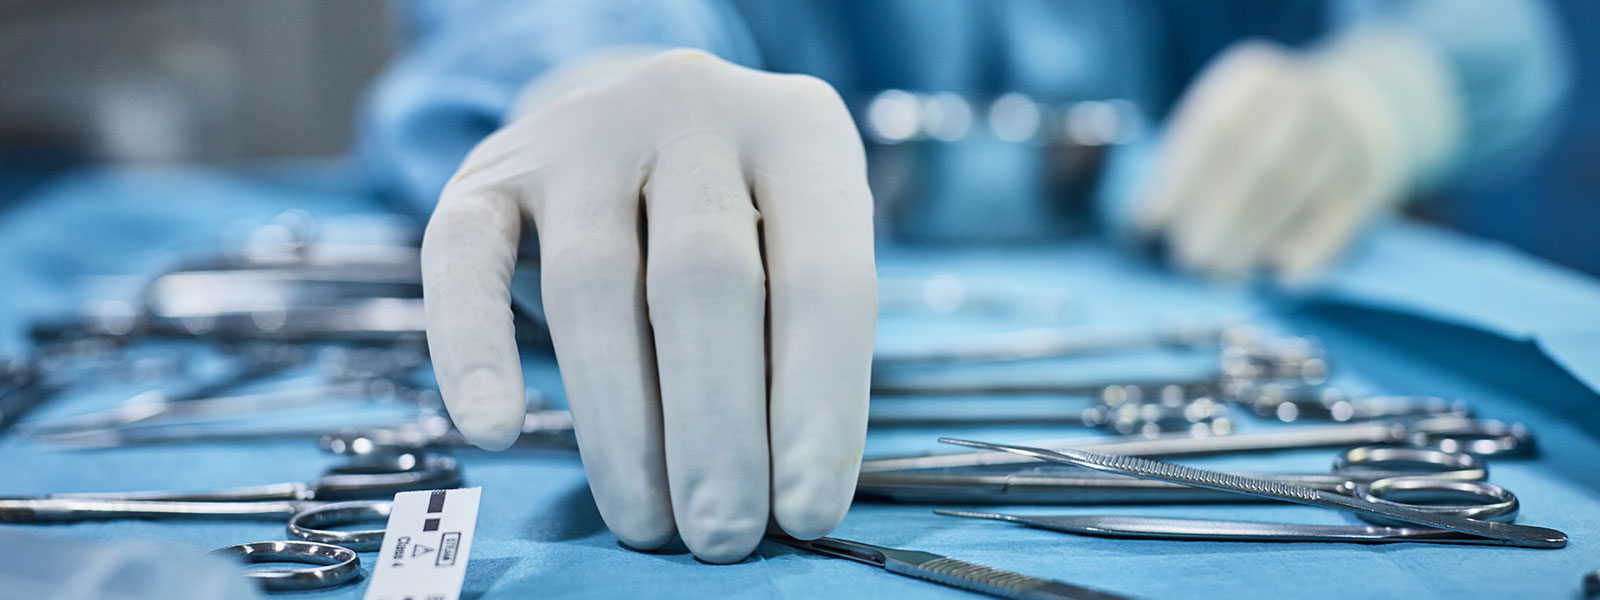 Sterile instruments in Operating Room